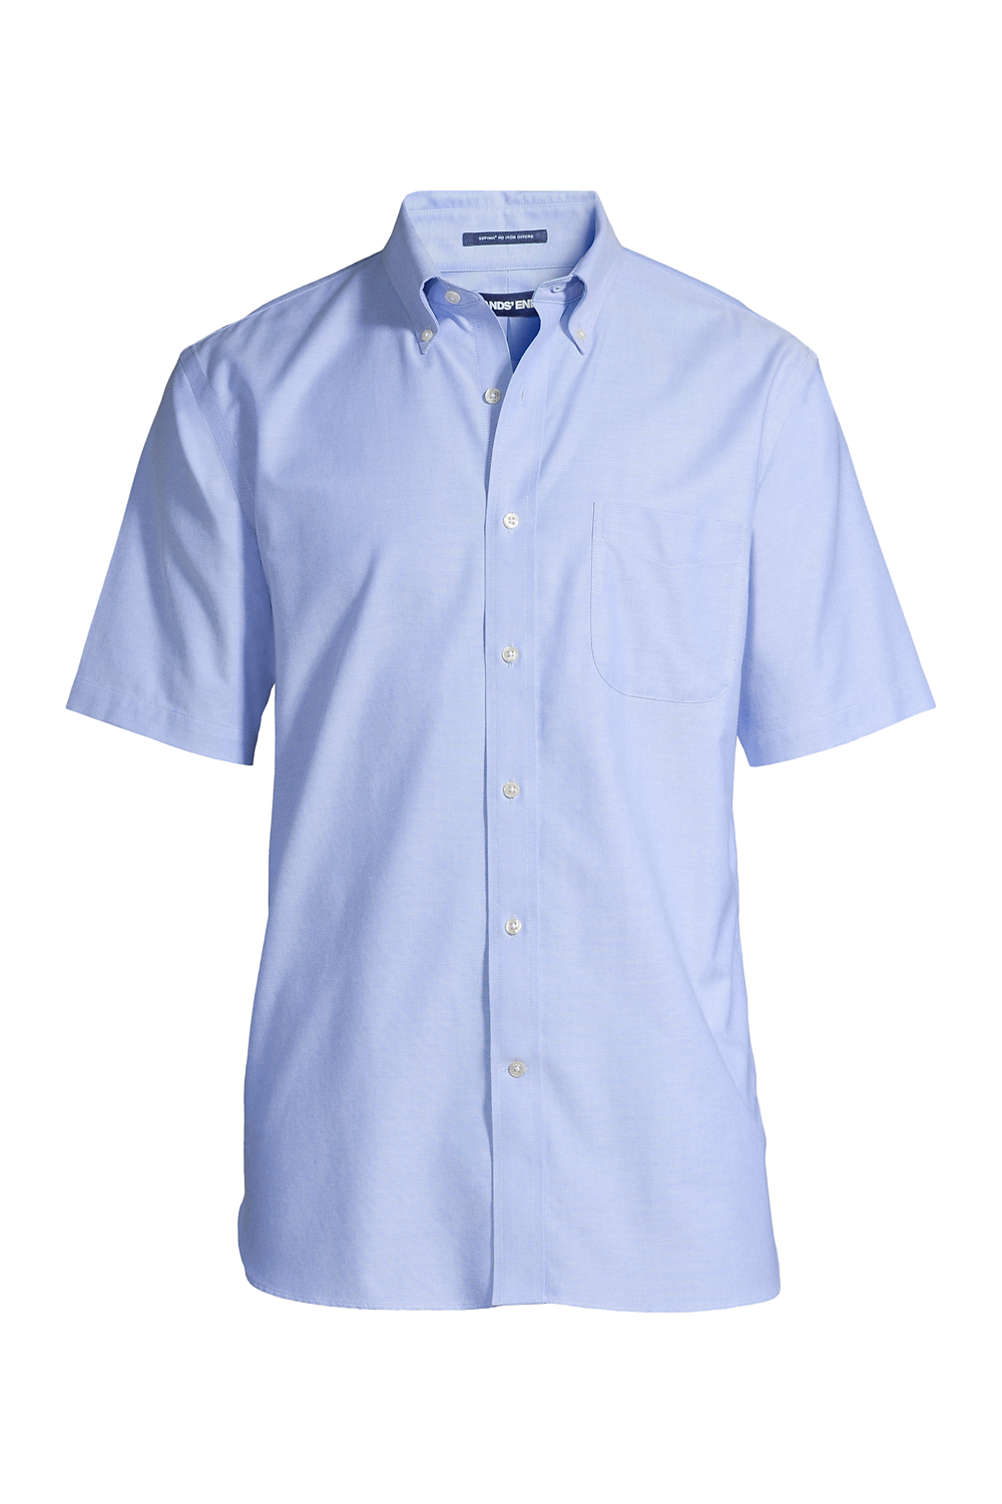 5c0c38f5425c0f Men's Big & Tall Traditional Fit Short Sleeve Solid No Iron Supima Oxford Dress  Shirt